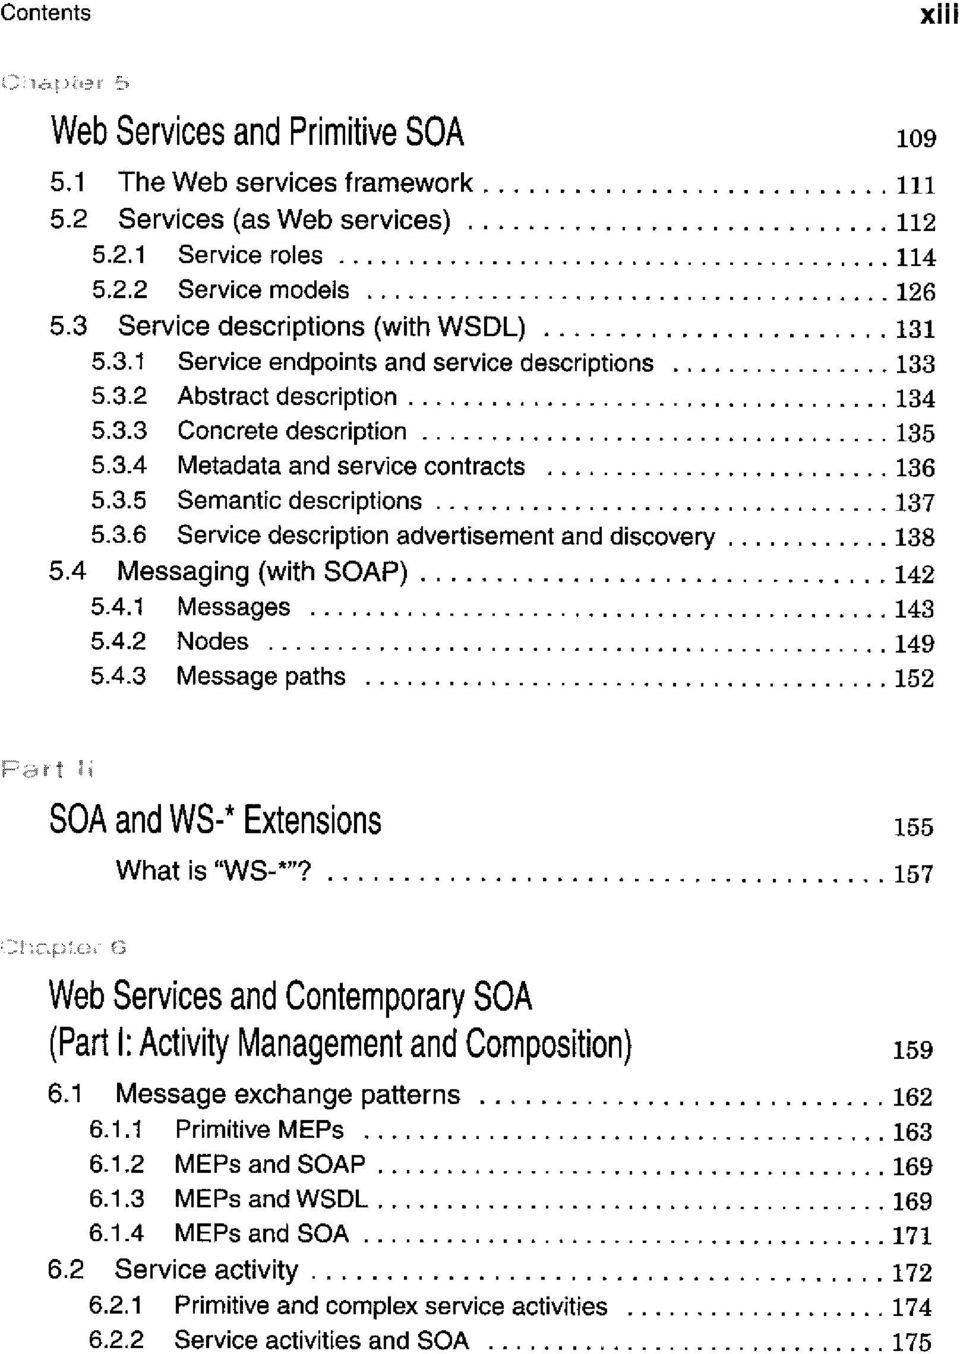 "3.6 Service description advertisement and discovery 138 5.4 Messaging (with SOAP) 142 5.4.1 Messages 143 5.4.2 Nodes 149 5.4.3 Message paths 152 Fciiff M SOA and WS-* Extensions 155 What is ""WS-*""?"